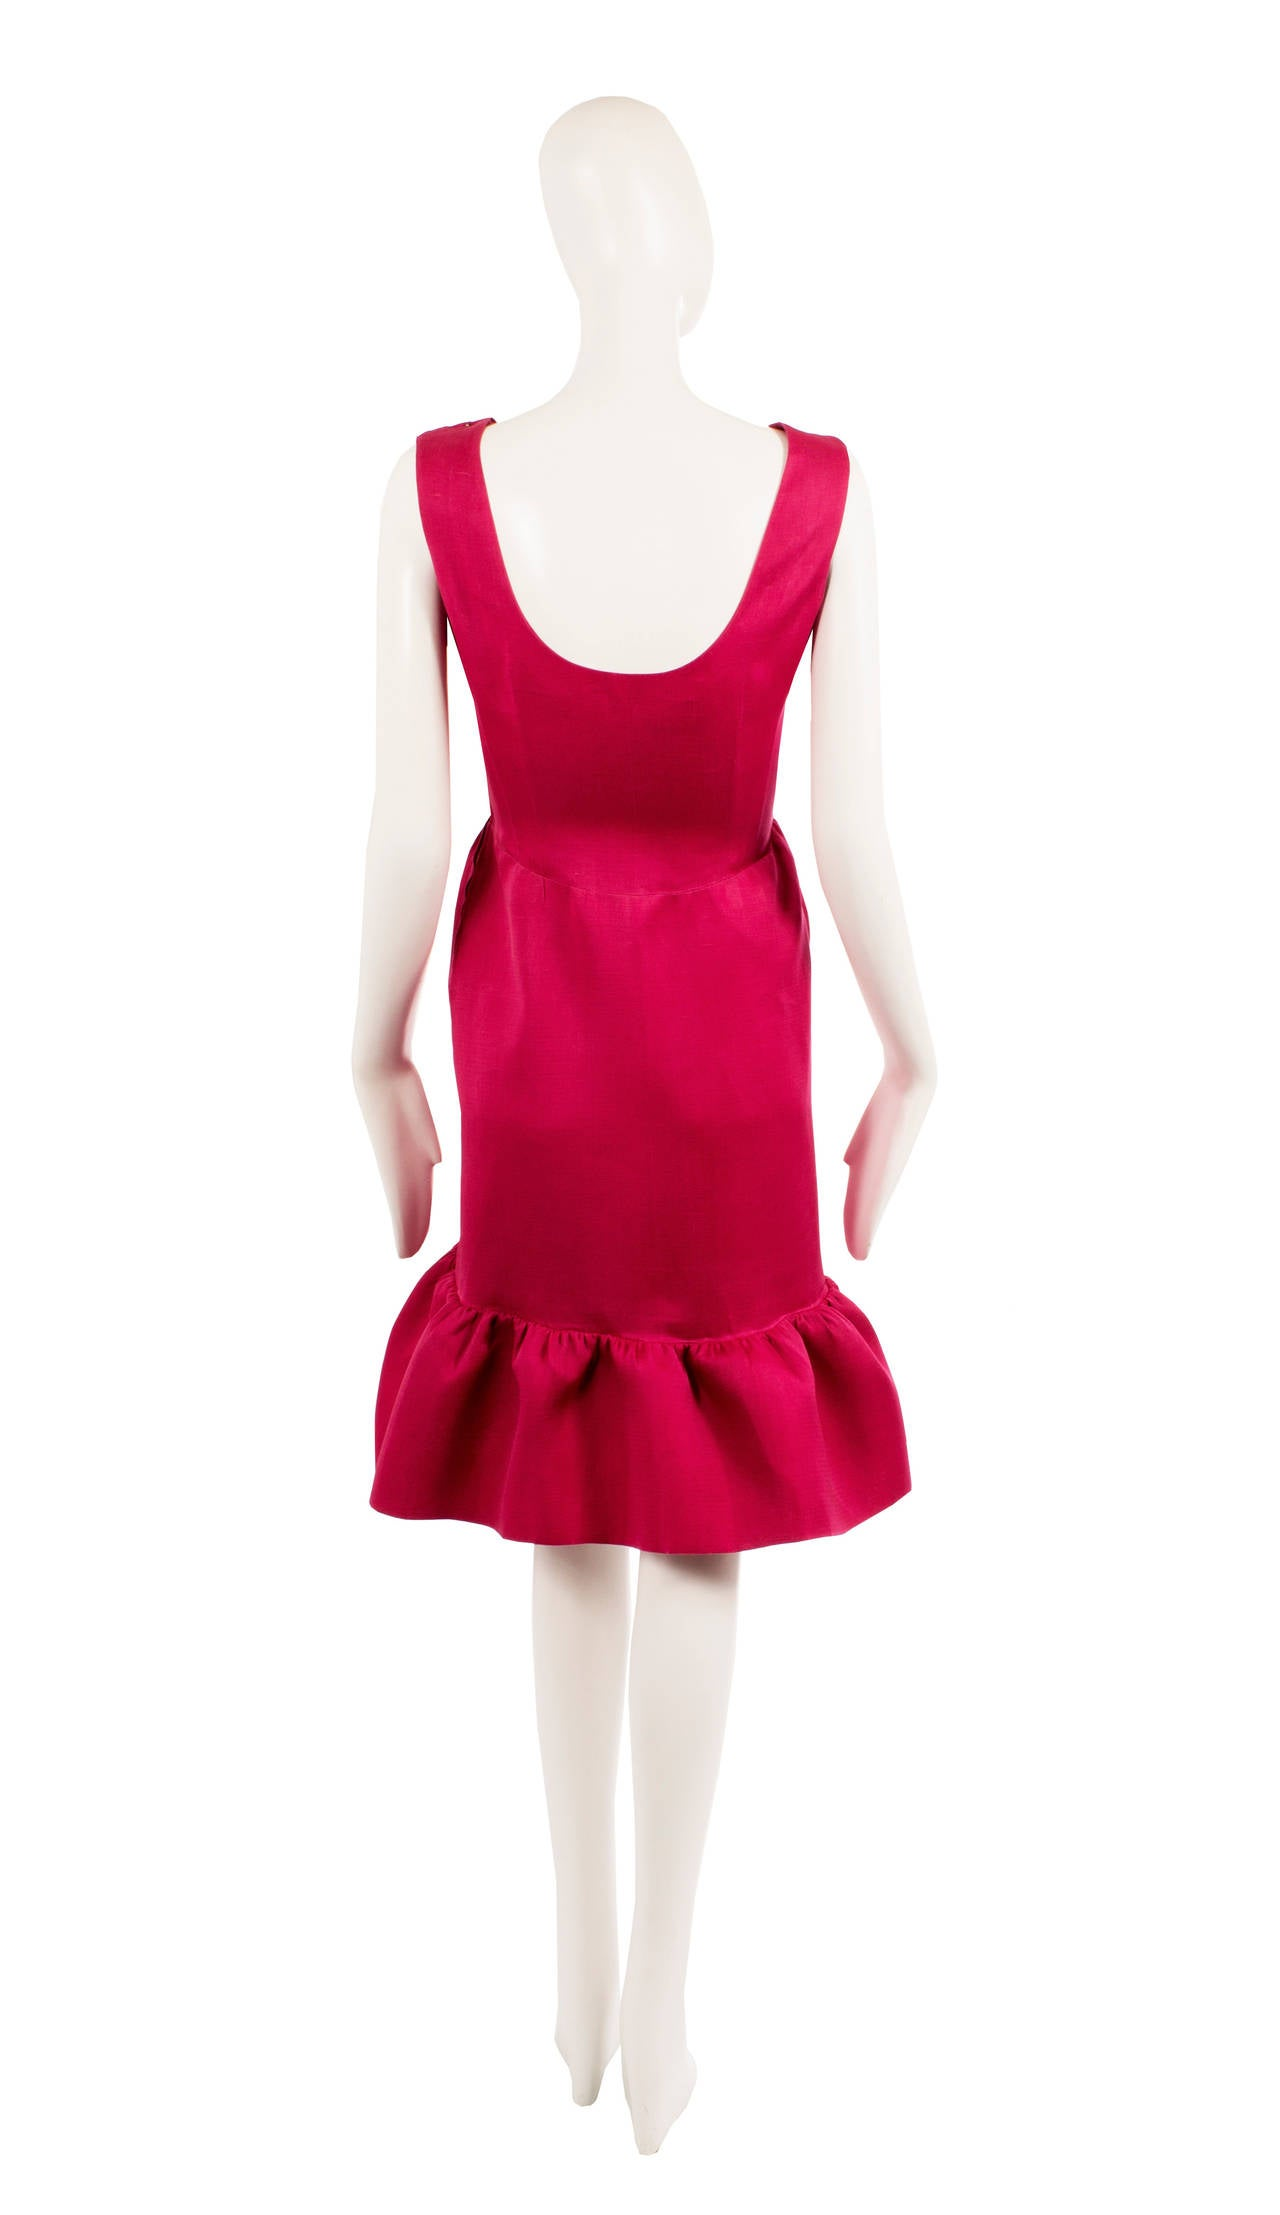 Balenciaga haute couture magenta silk dress, circa 1965 3